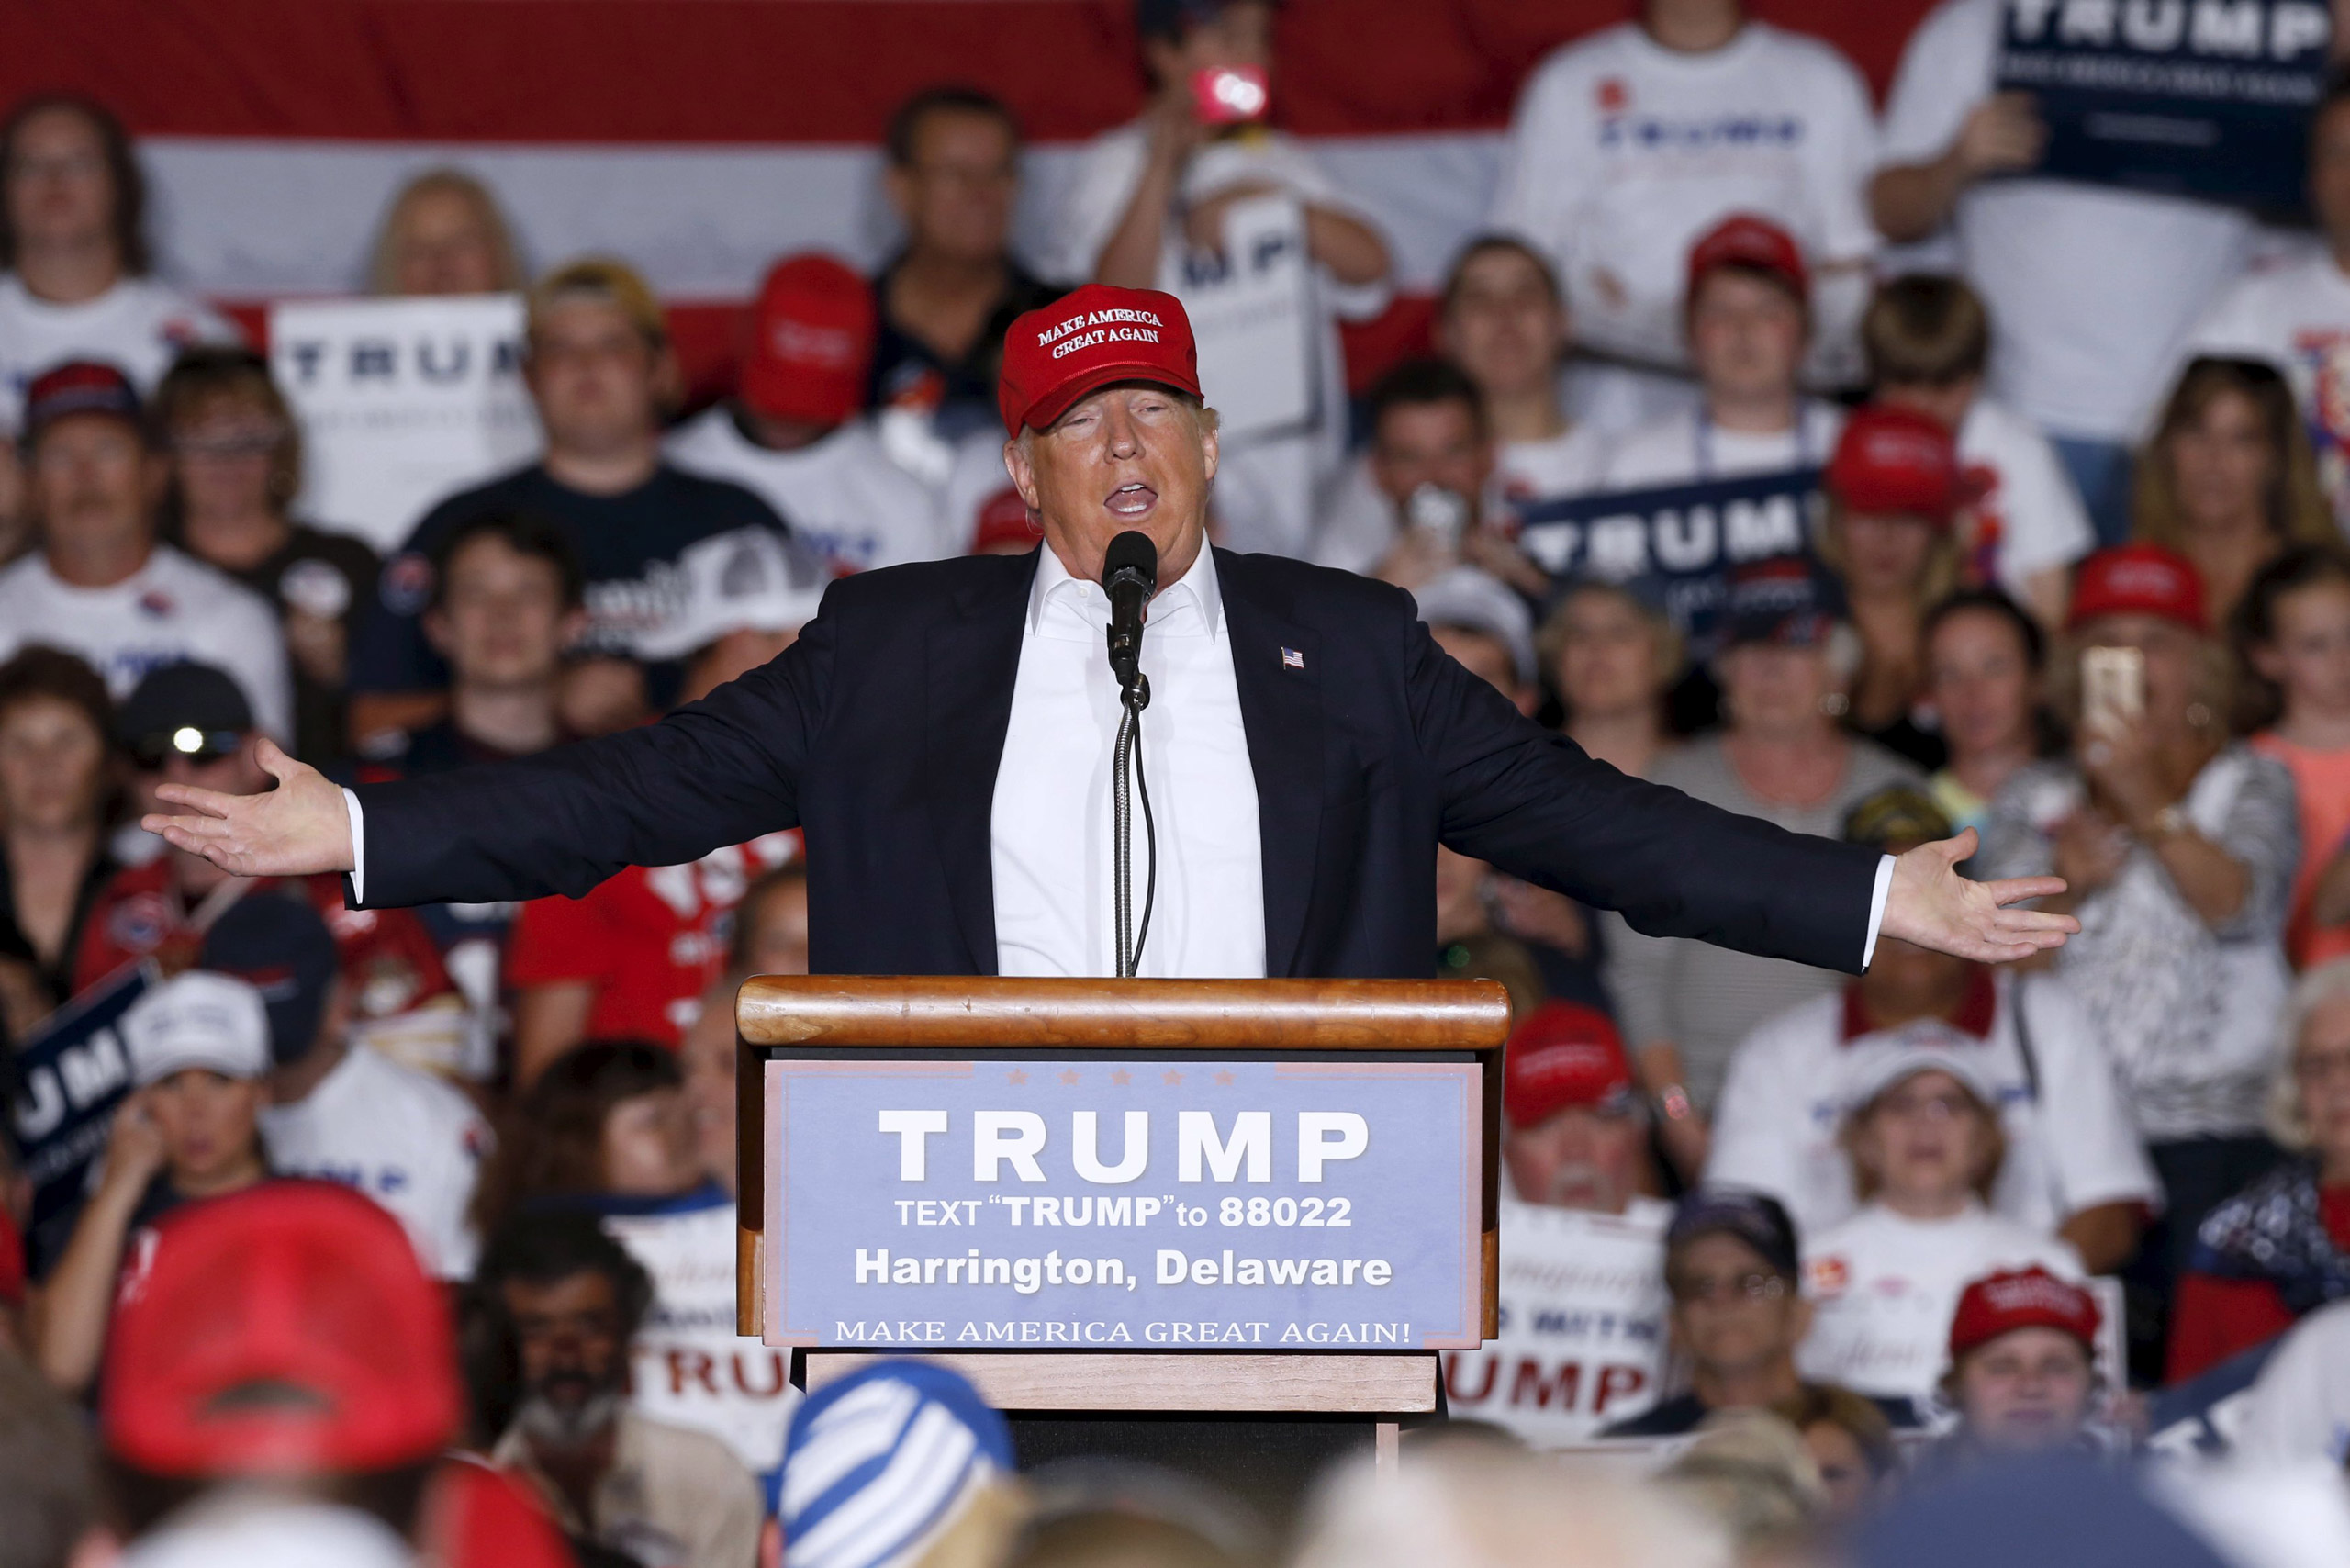 Republican presidential candidate Donald Trump holds a rally with supporters in Harrington, Delaware, on April 22, 2016.